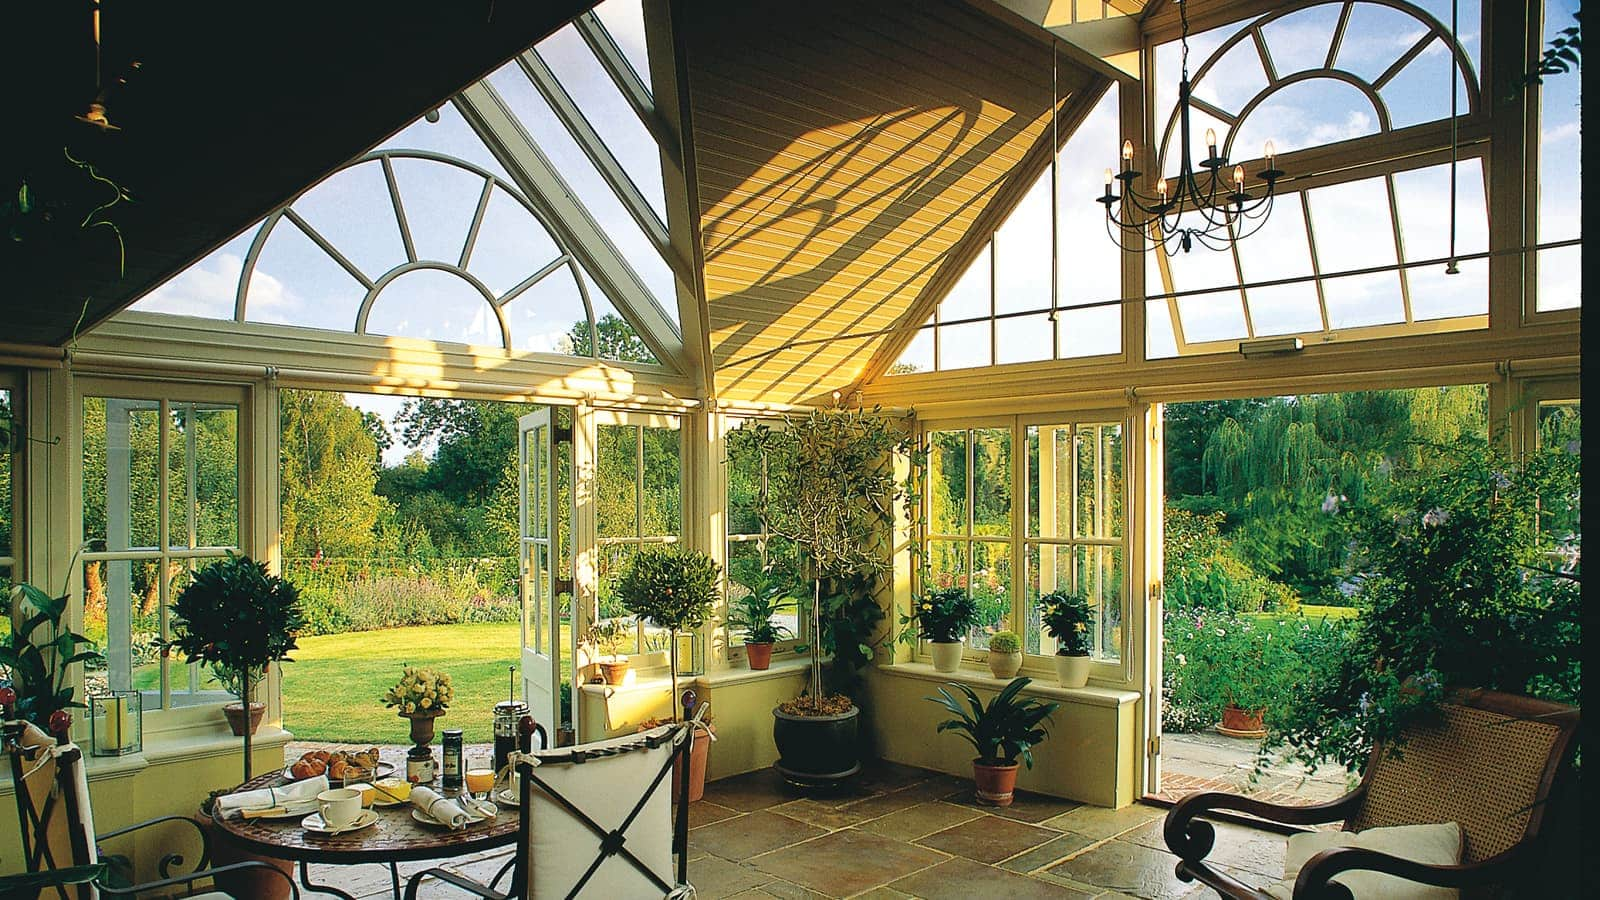 Garden room featuring gable ends overlooking an English garden